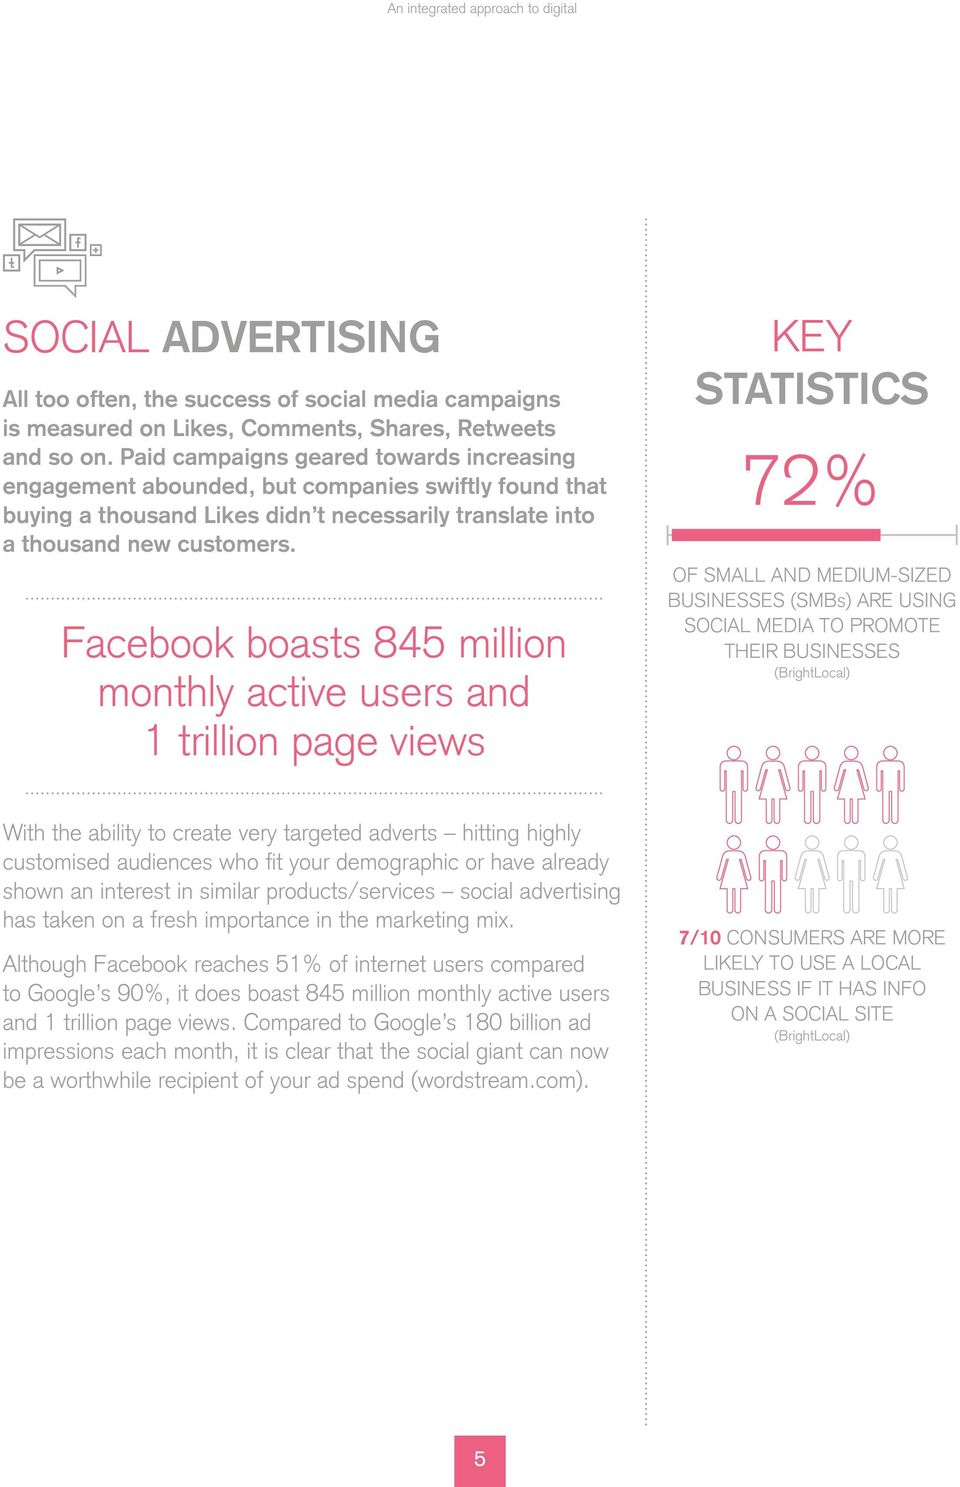 Facebook boasts 845 million monthly active users and 1 trillion page views STATISTICS 72% OF SMALL AND MEDIUM-SIZED BUSINESSES (SMBs) ARE USING SOCIAL MEDIA TO PROMOTE THEIR BUSINESSES (BrightLocal)